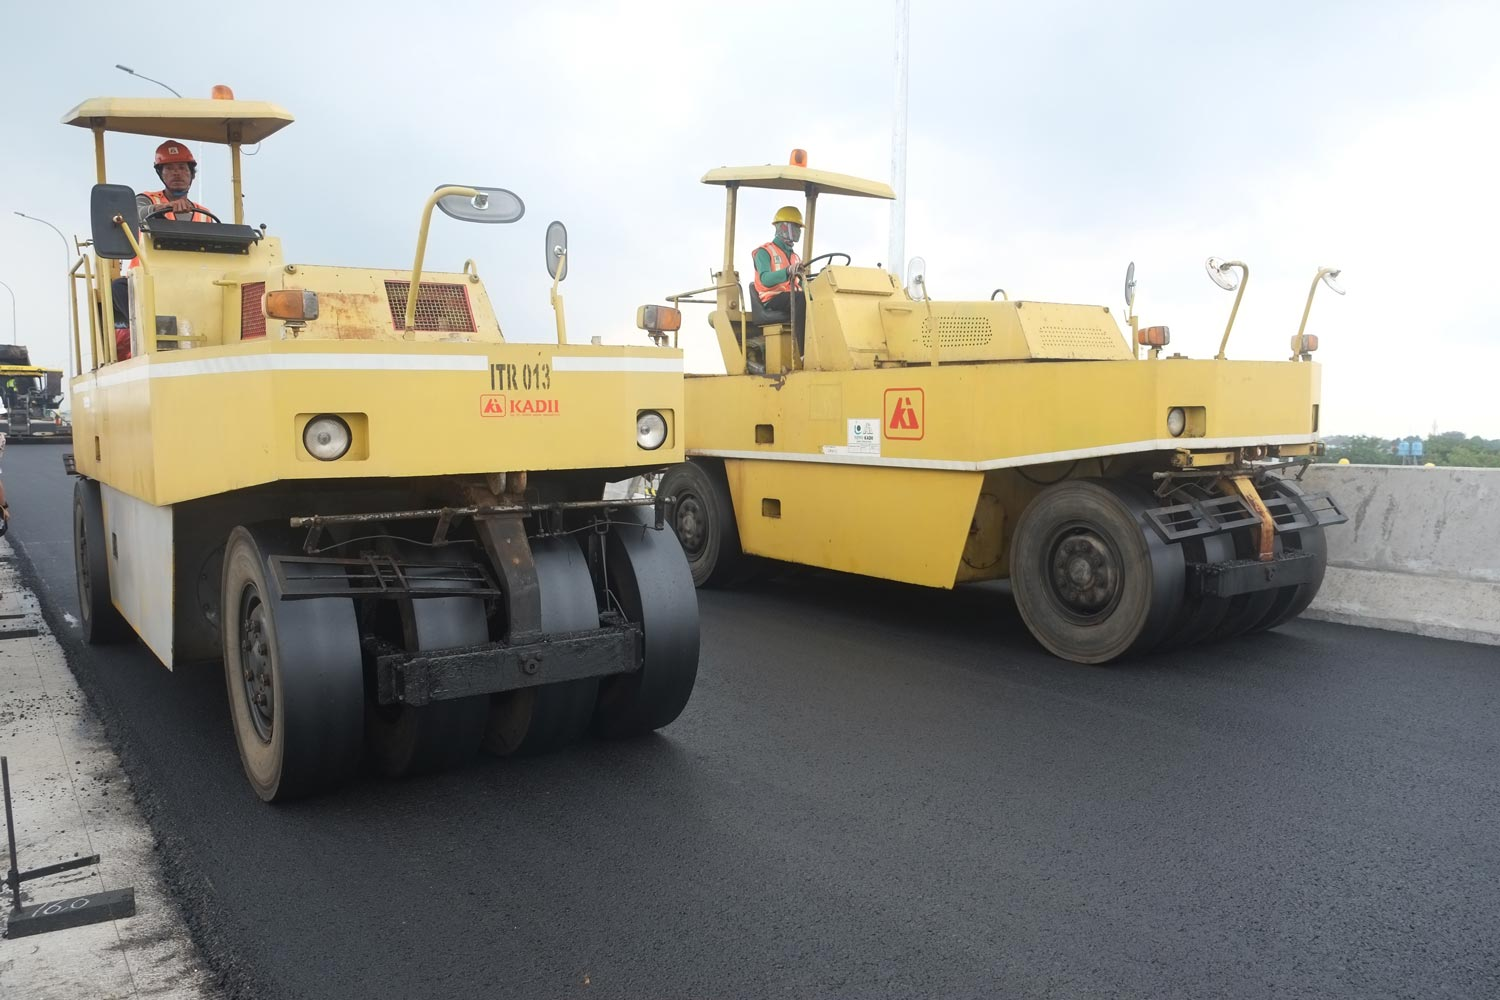 Compaction by PTR (Pneumatic tyred roller)